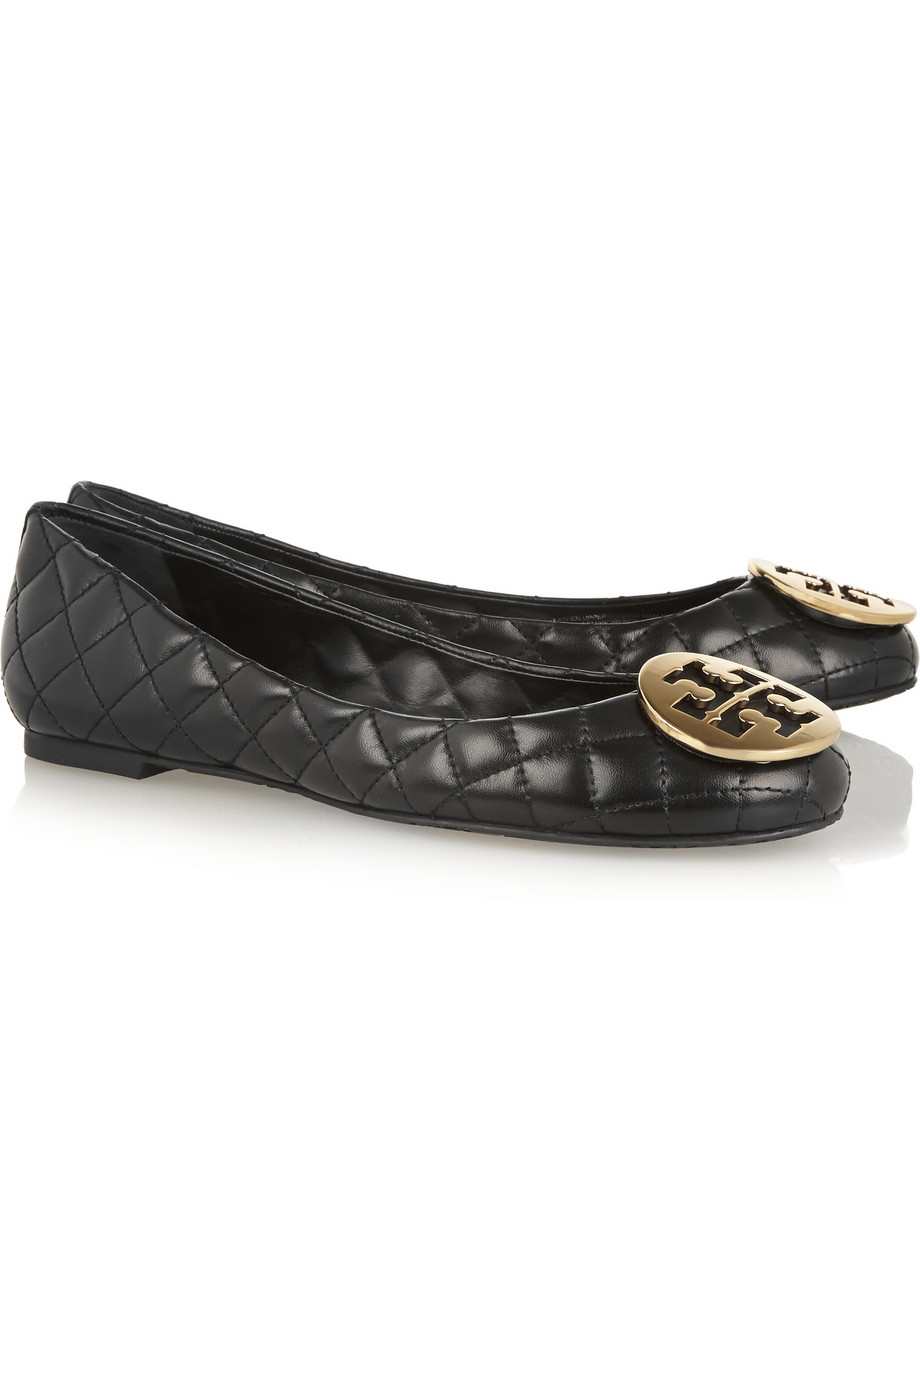 92c232f3b76 Tory Burch Quinn Quilted Leather Ballet Flats in Black - Lyst